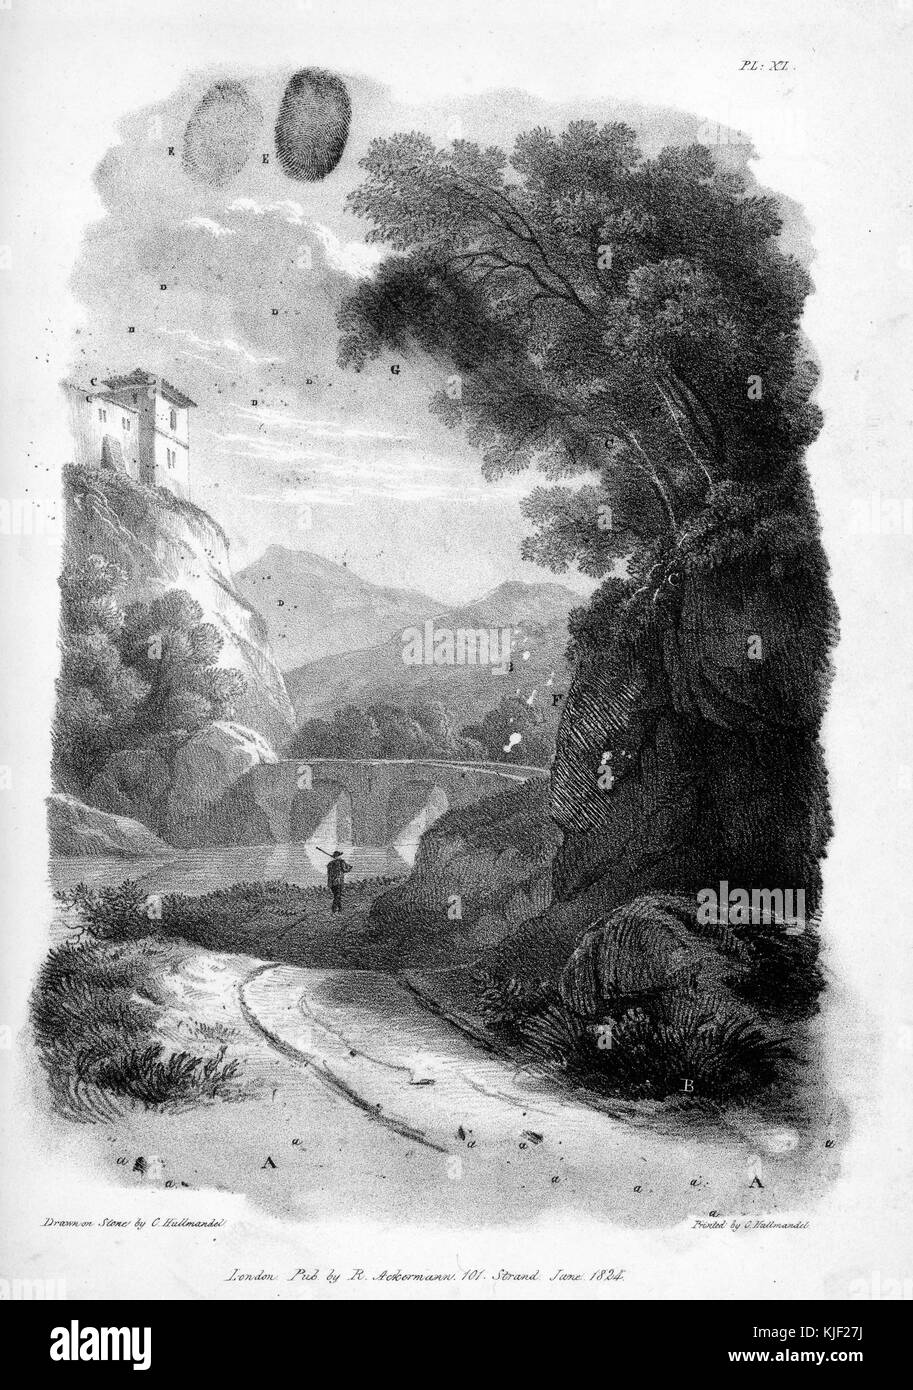 Lithographic impression on paper, depicting a man walking down a path, hills and trees around him, a house on top - Stock Image